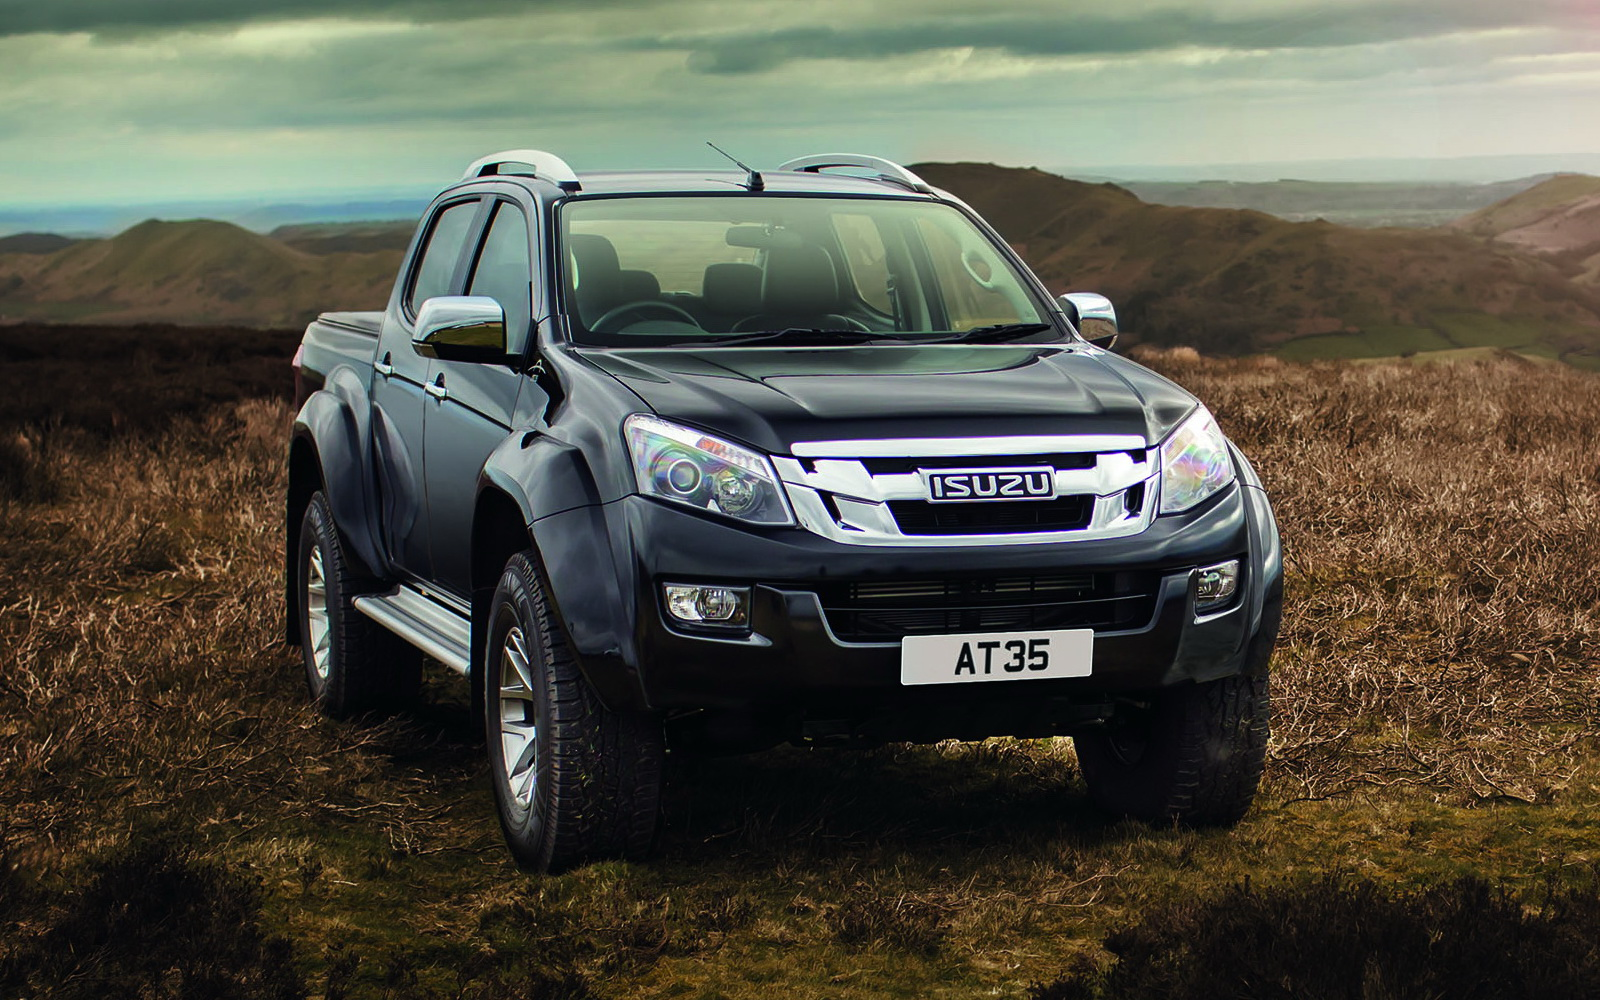 isuzu launches badass d max at35 with the kind help of arctic trucks carscoops. Black Bedroom Furniture Sets. Home Design Ideas